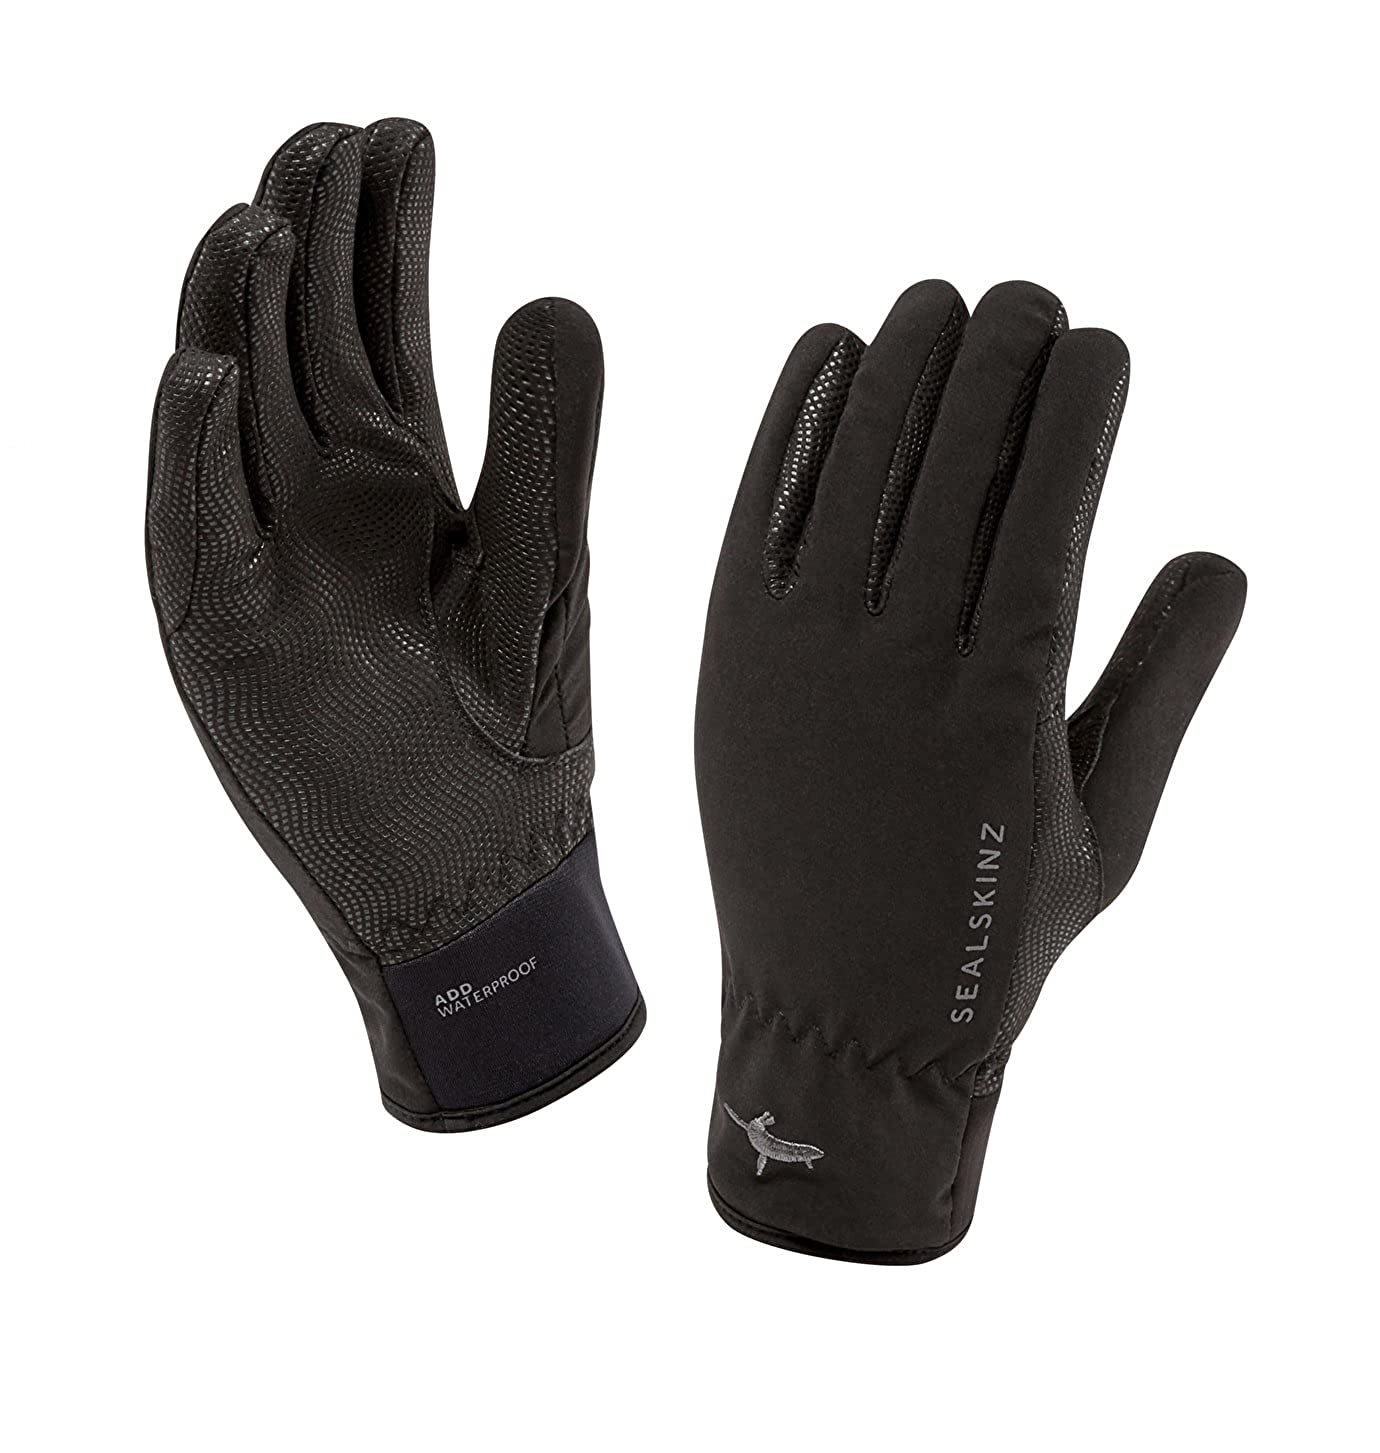 Sealskinz Handschuhe Sea Leopard Gloves - Guantes de Ciclismo para Mujer